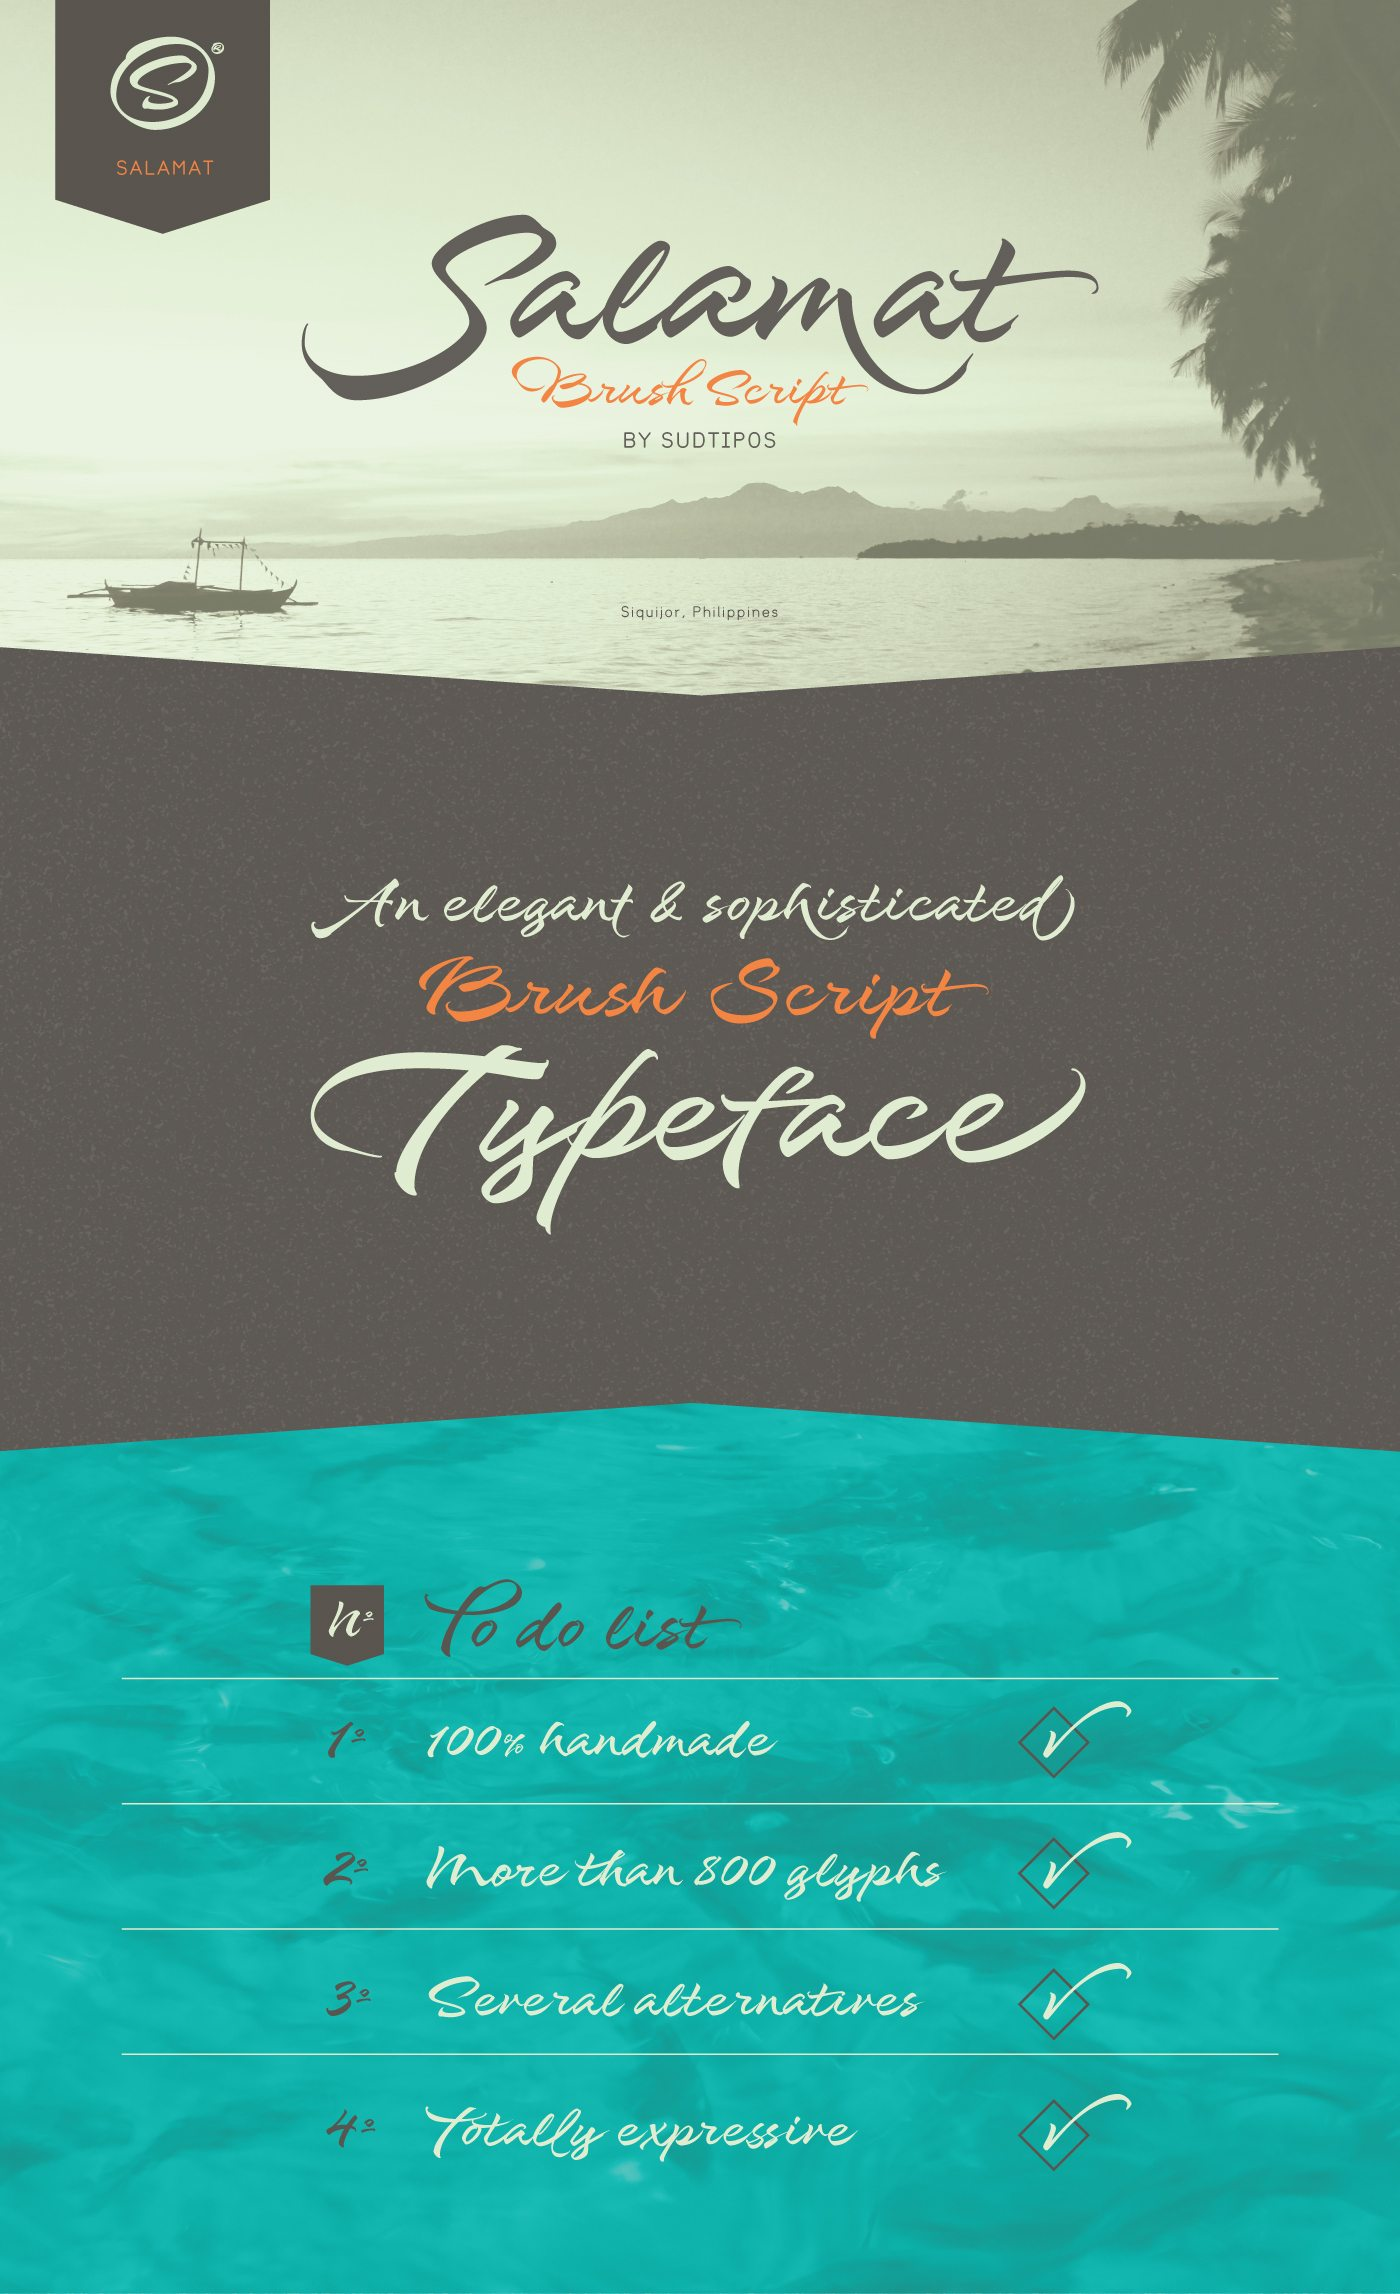 ecfedf2214c875a75fedf30713c0a05c 100+ Beautiful Script, Brush & Calligraphy Fonts design tips